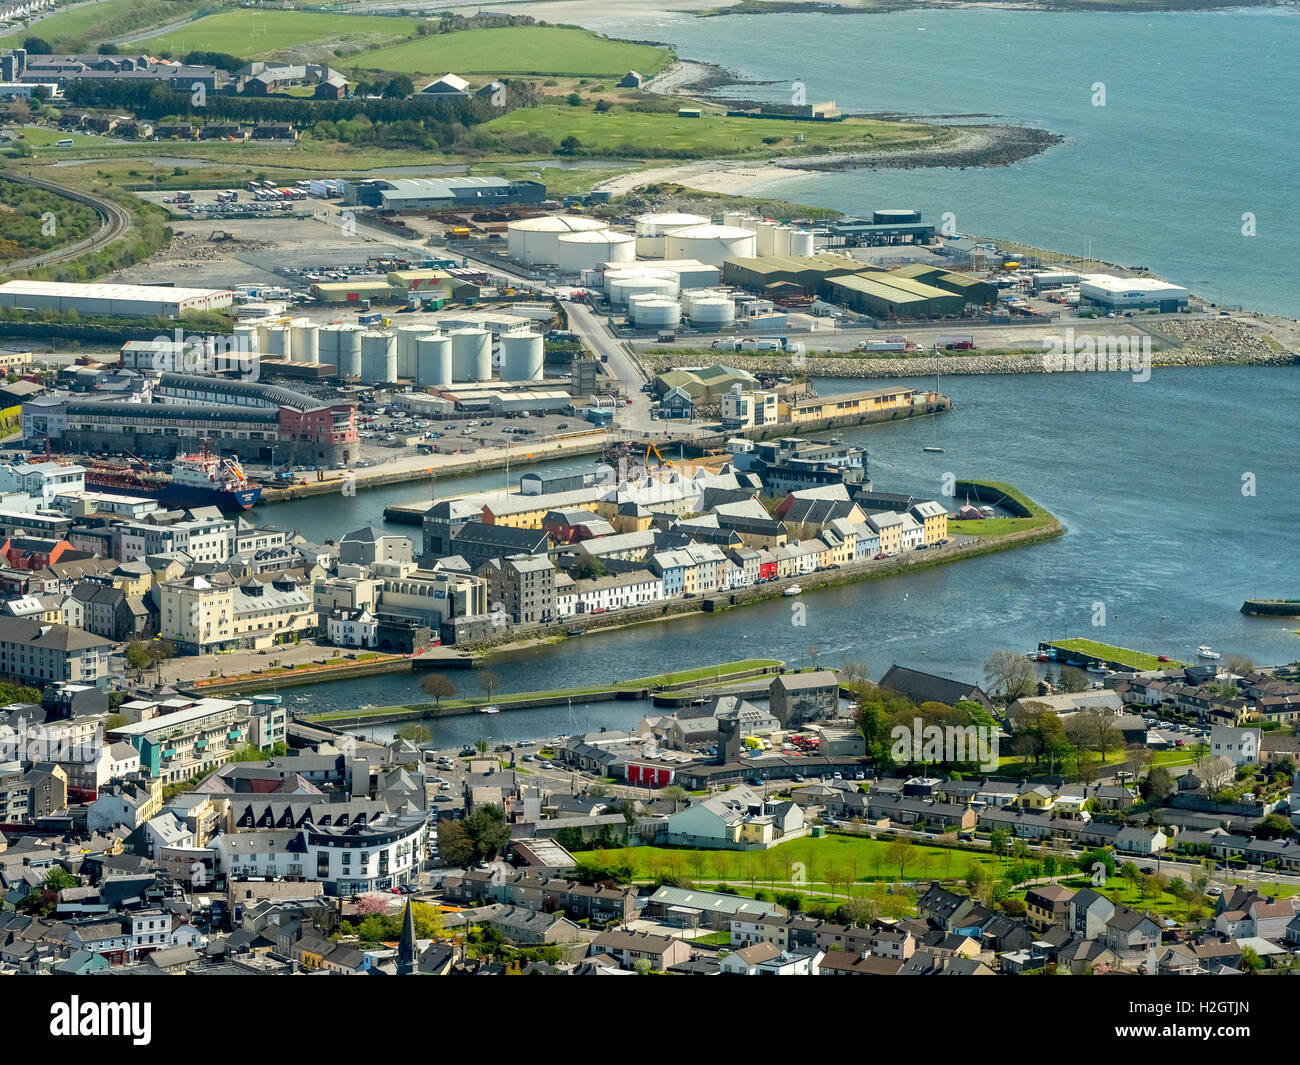 Galway harbour, docks, Galway, County Clare, Ireland - Stock Image